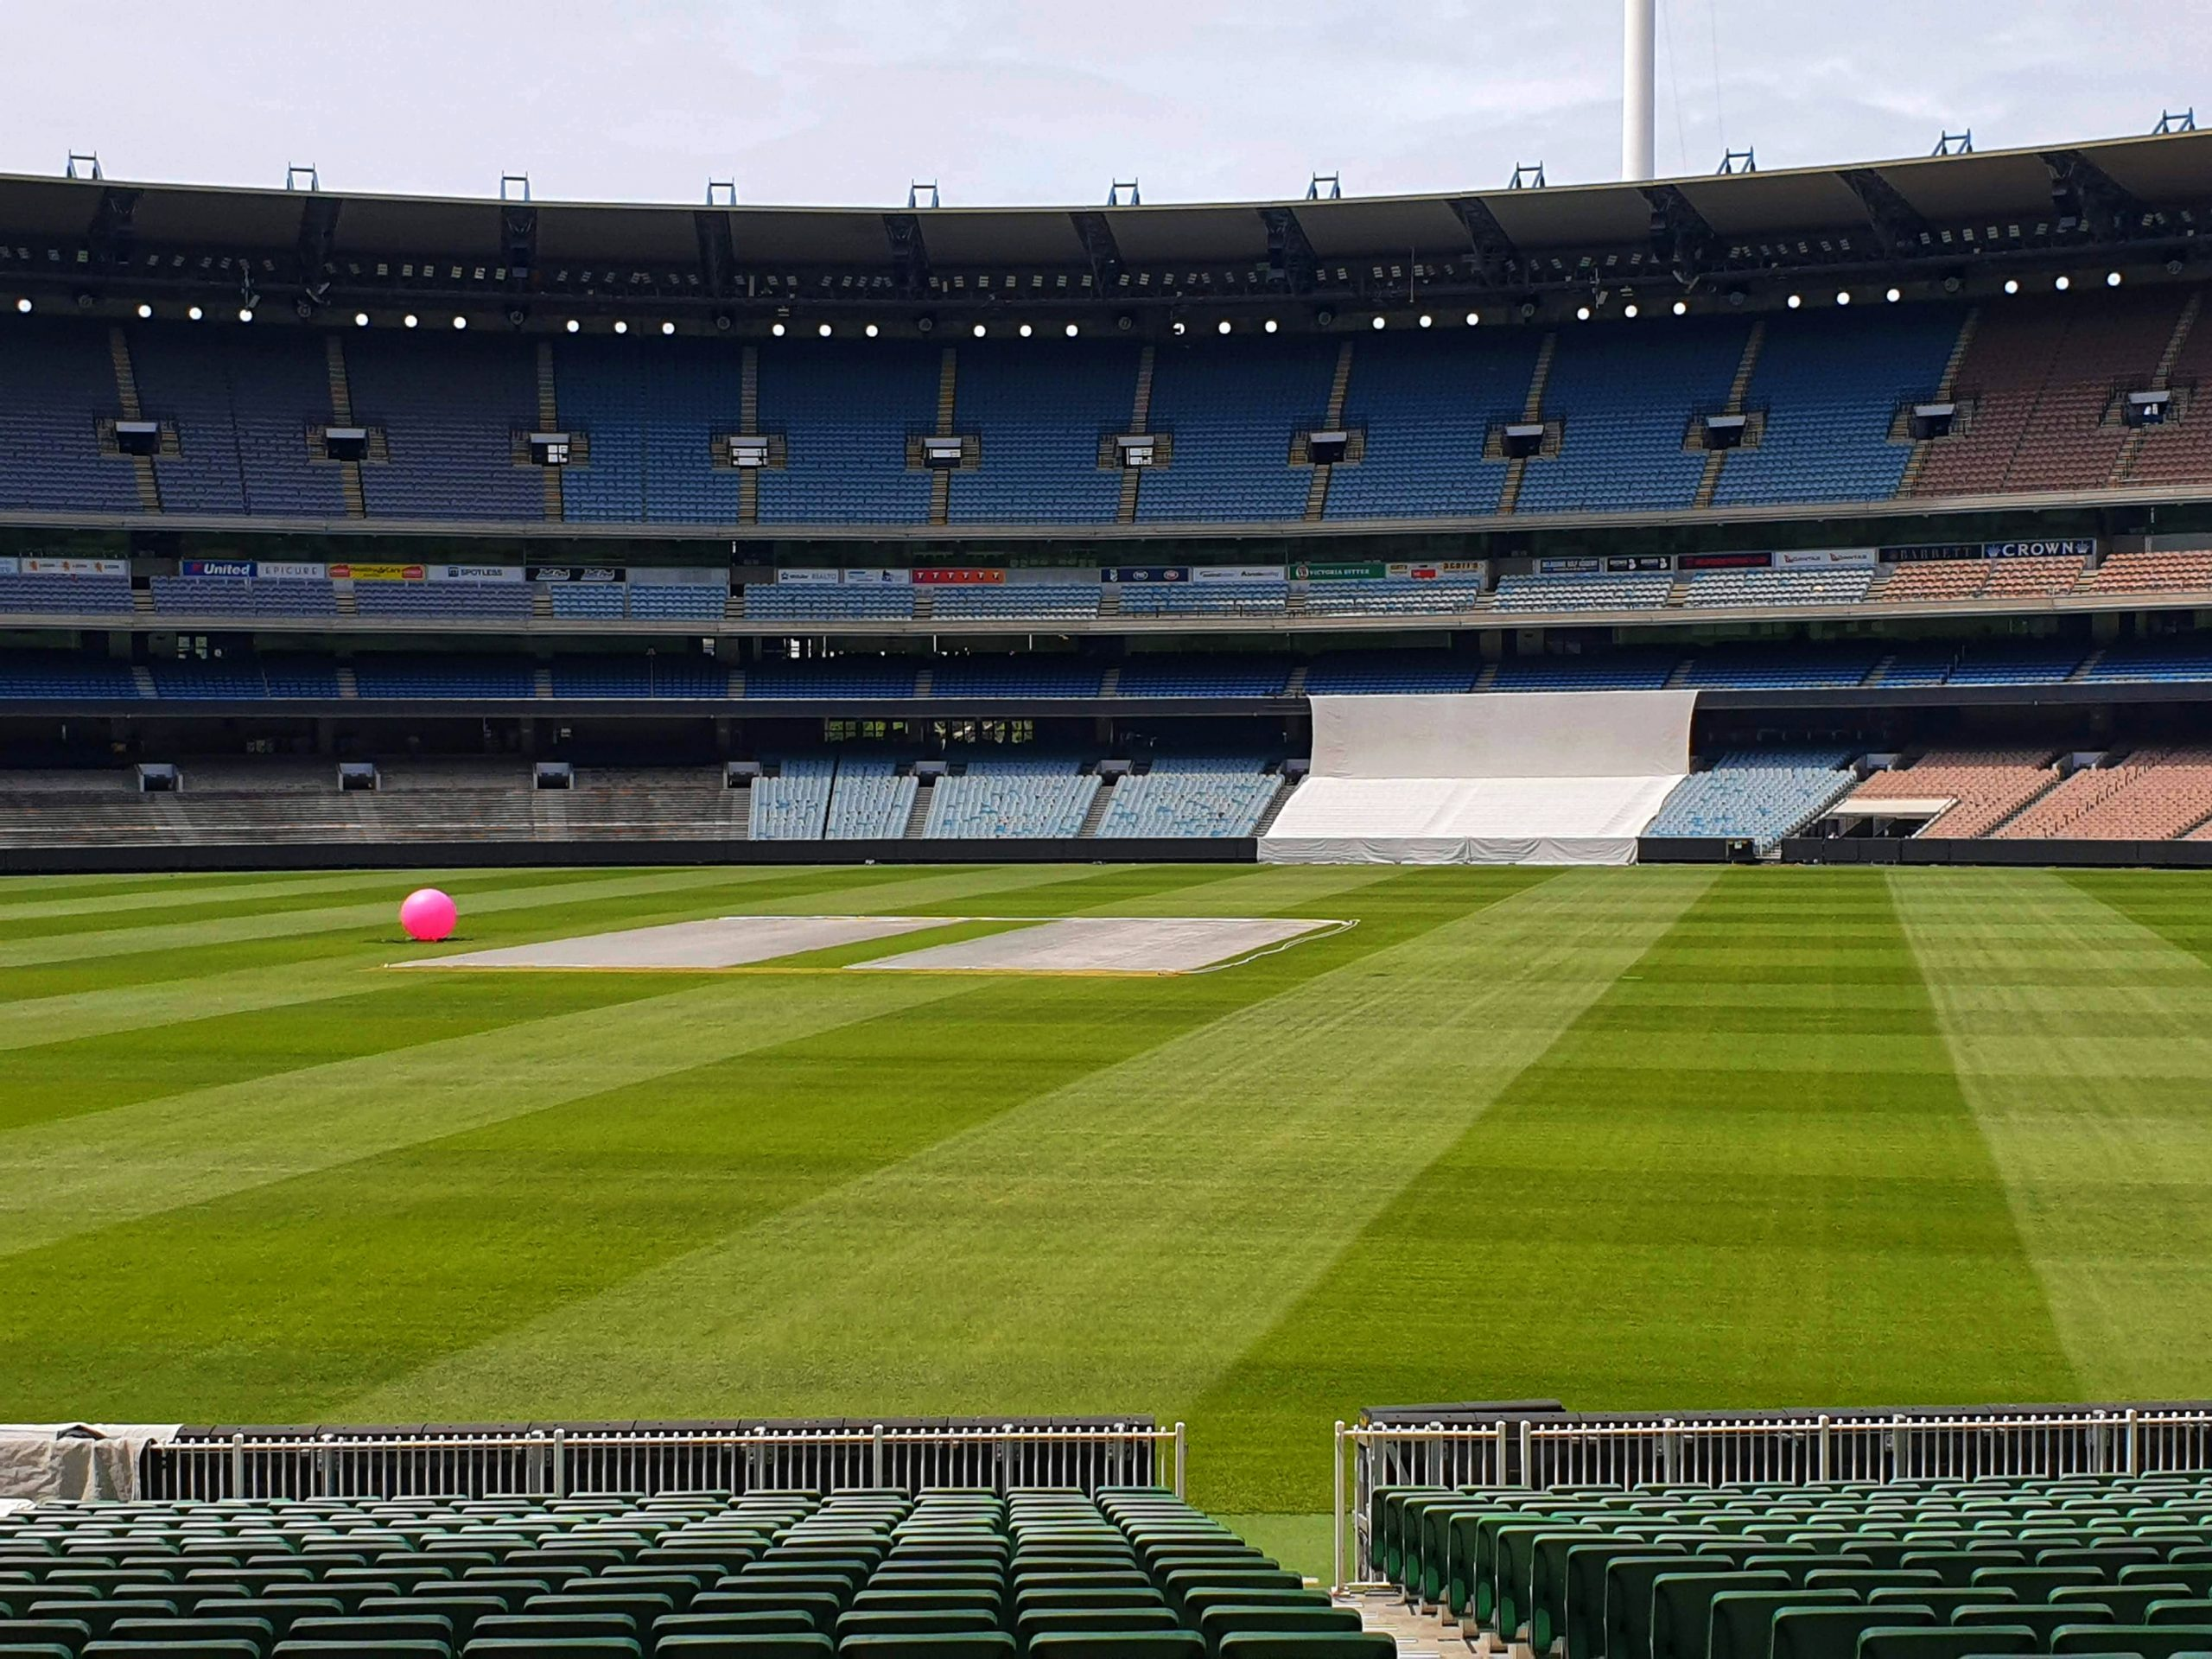 Melbourne Cricket Ground in Australia